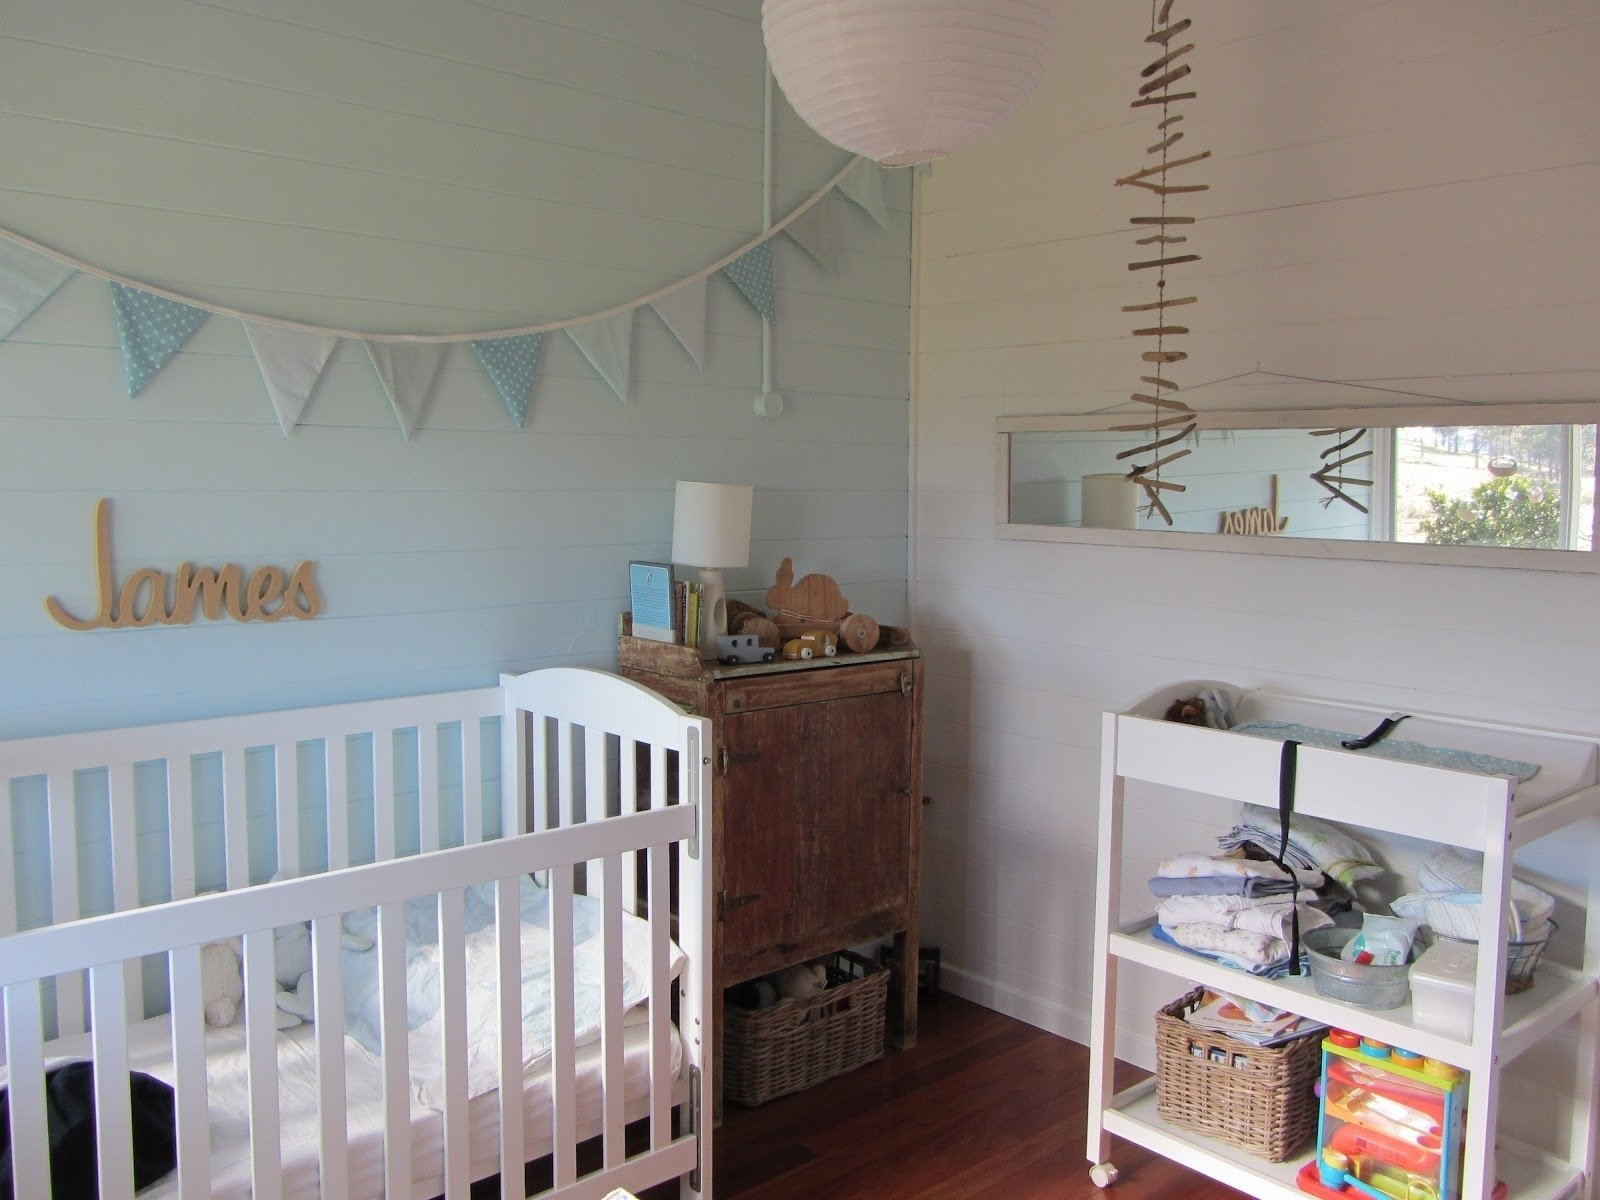 10 Great Baby Room Ideas For A Boy baby bedroom ideas boy e280a2 bedroom ideas 2020